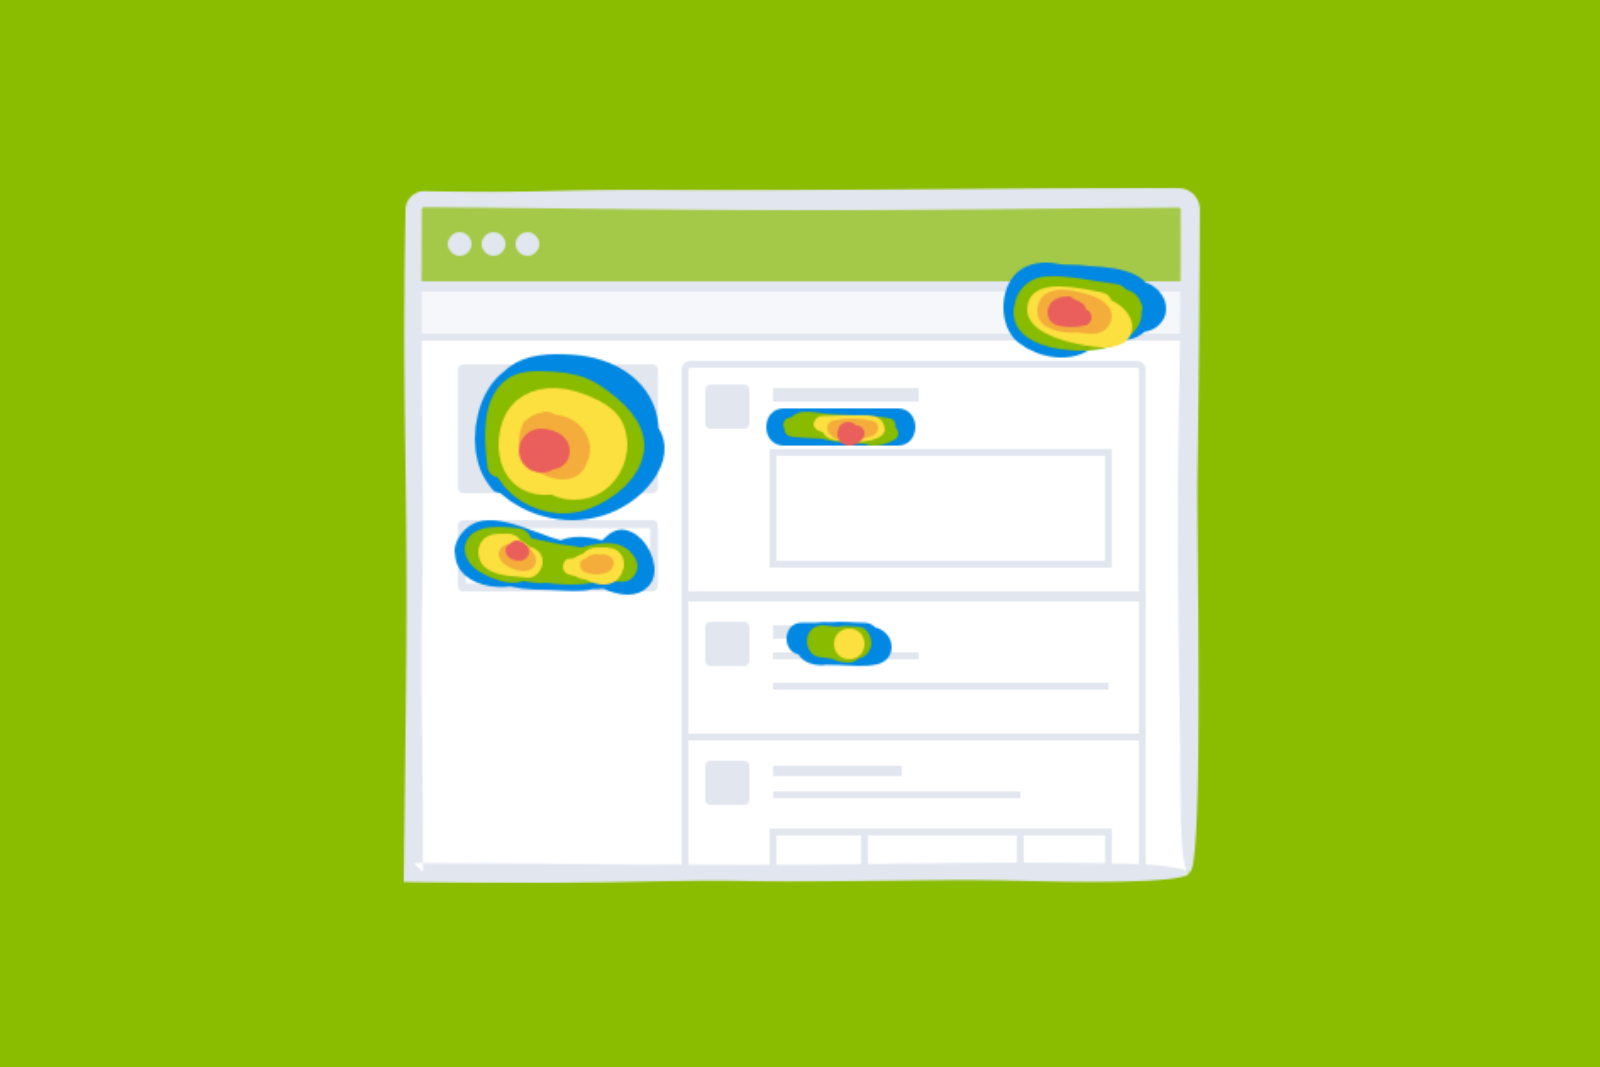 How to Interpret and Use Clickmaps to Improve Your Website's UX